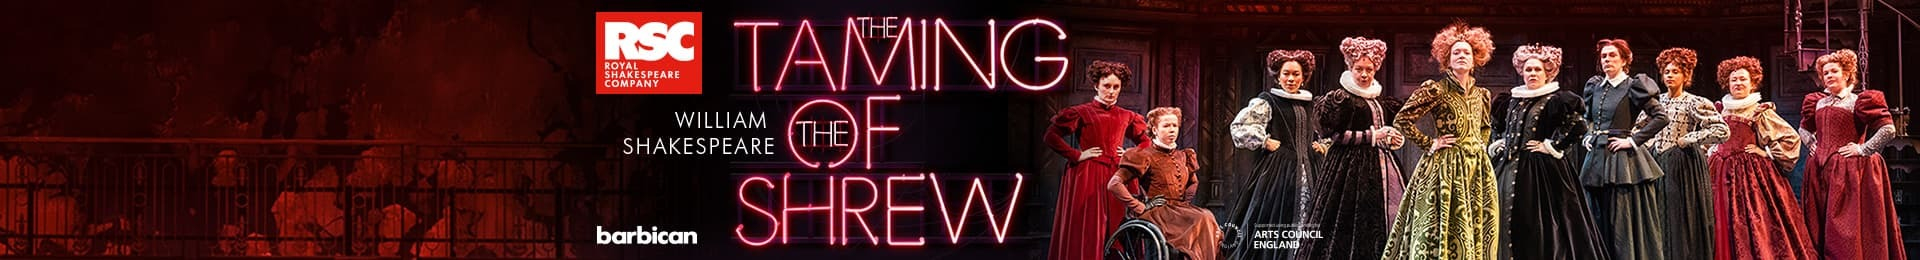 The Taming of the Shrew banner image